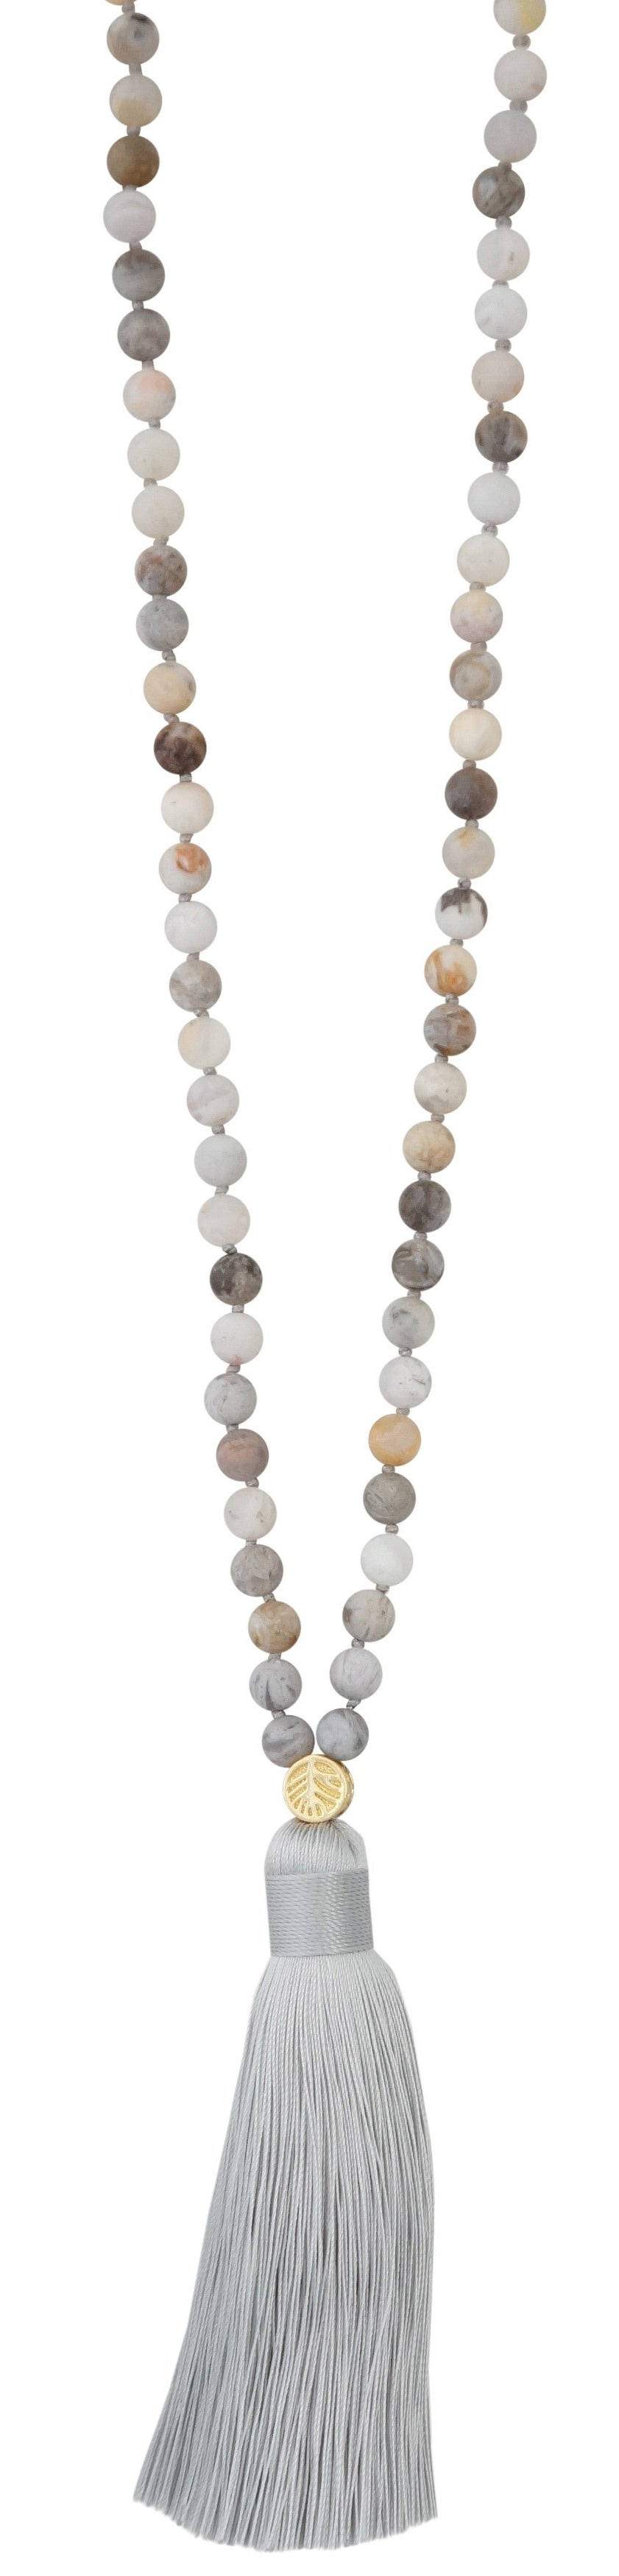 Spirit Mala - Carolyn Hearn Designs